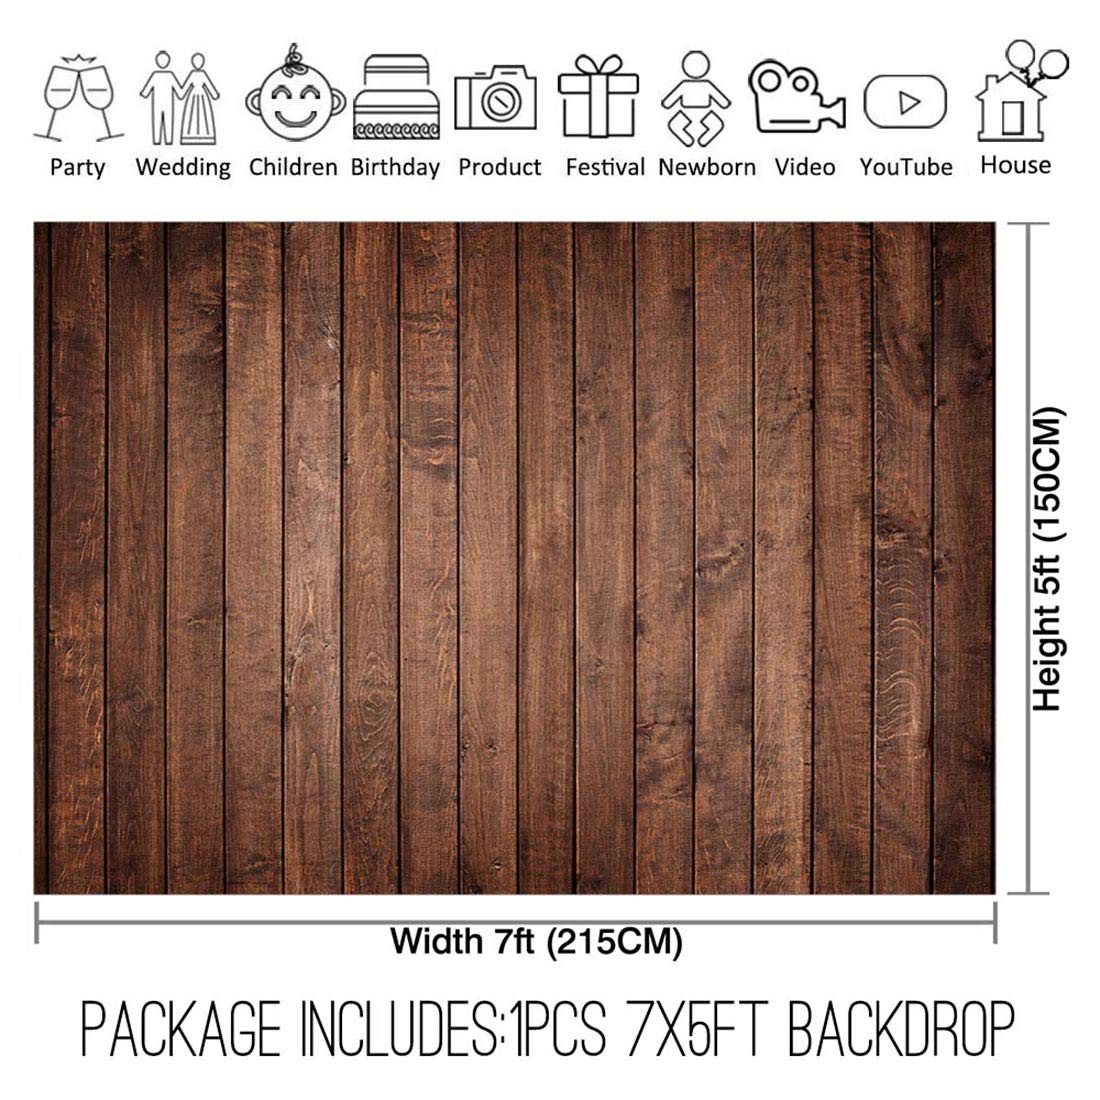 Allenjoy 7x5ft Fabric Vintage Brown Wood Backdrops for Newborn Photography Wrinkle Free Rustic Russet Grunge Wooden Floor Planks Wall Baby Portrait Still Life Product Photographer Photo Studio Props by Allenjoy (Image #2)